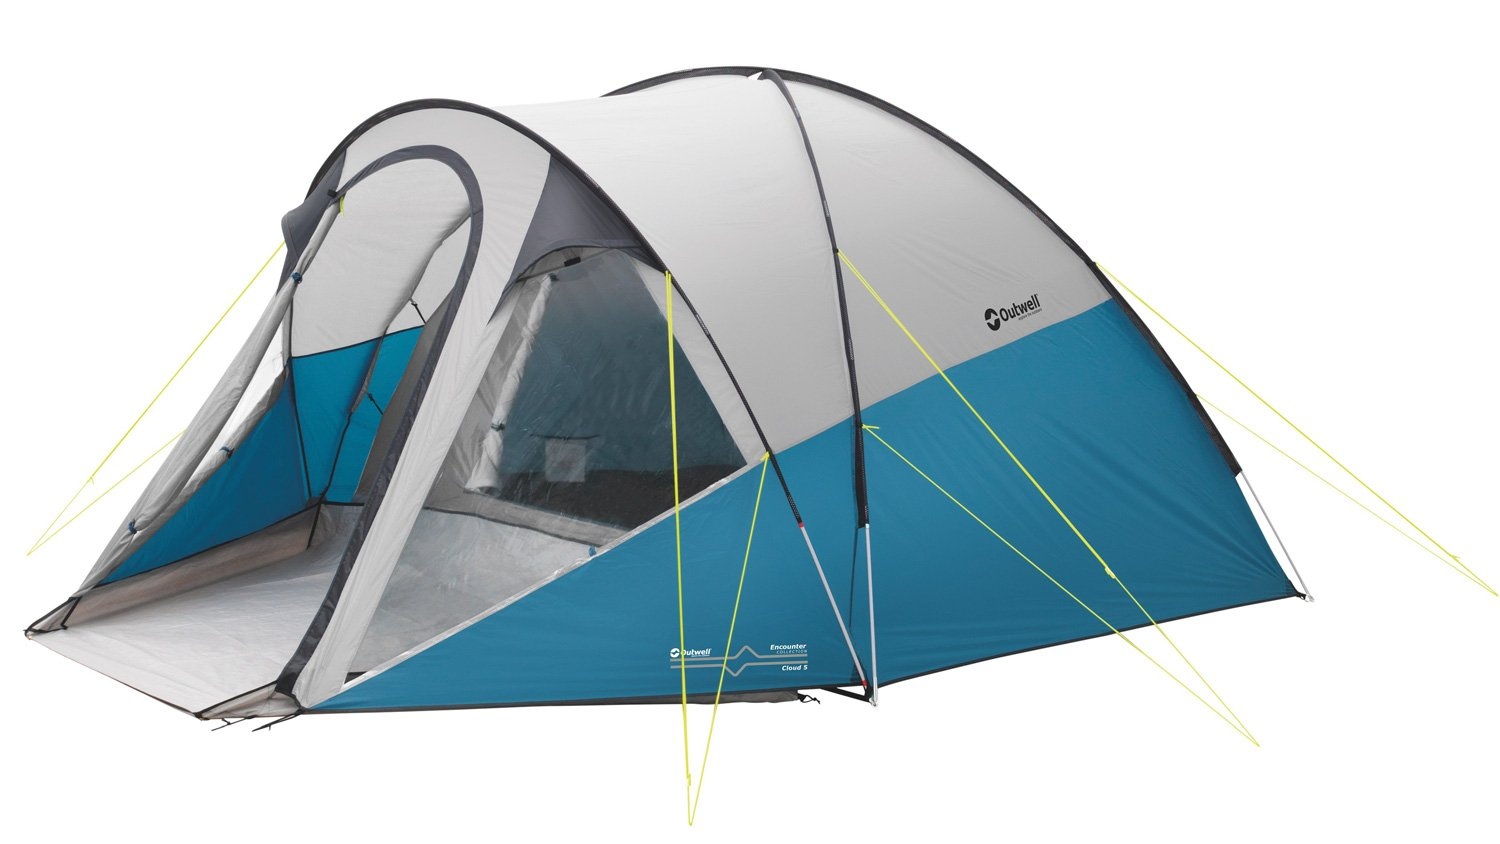 Outwell Cloud 5 Tent grey/blue 2016 tube tent Amazon.co.uk Sports u0026 Outdoors  sc 1 st  Amazon UK : outwell pop up tent - memphite.com